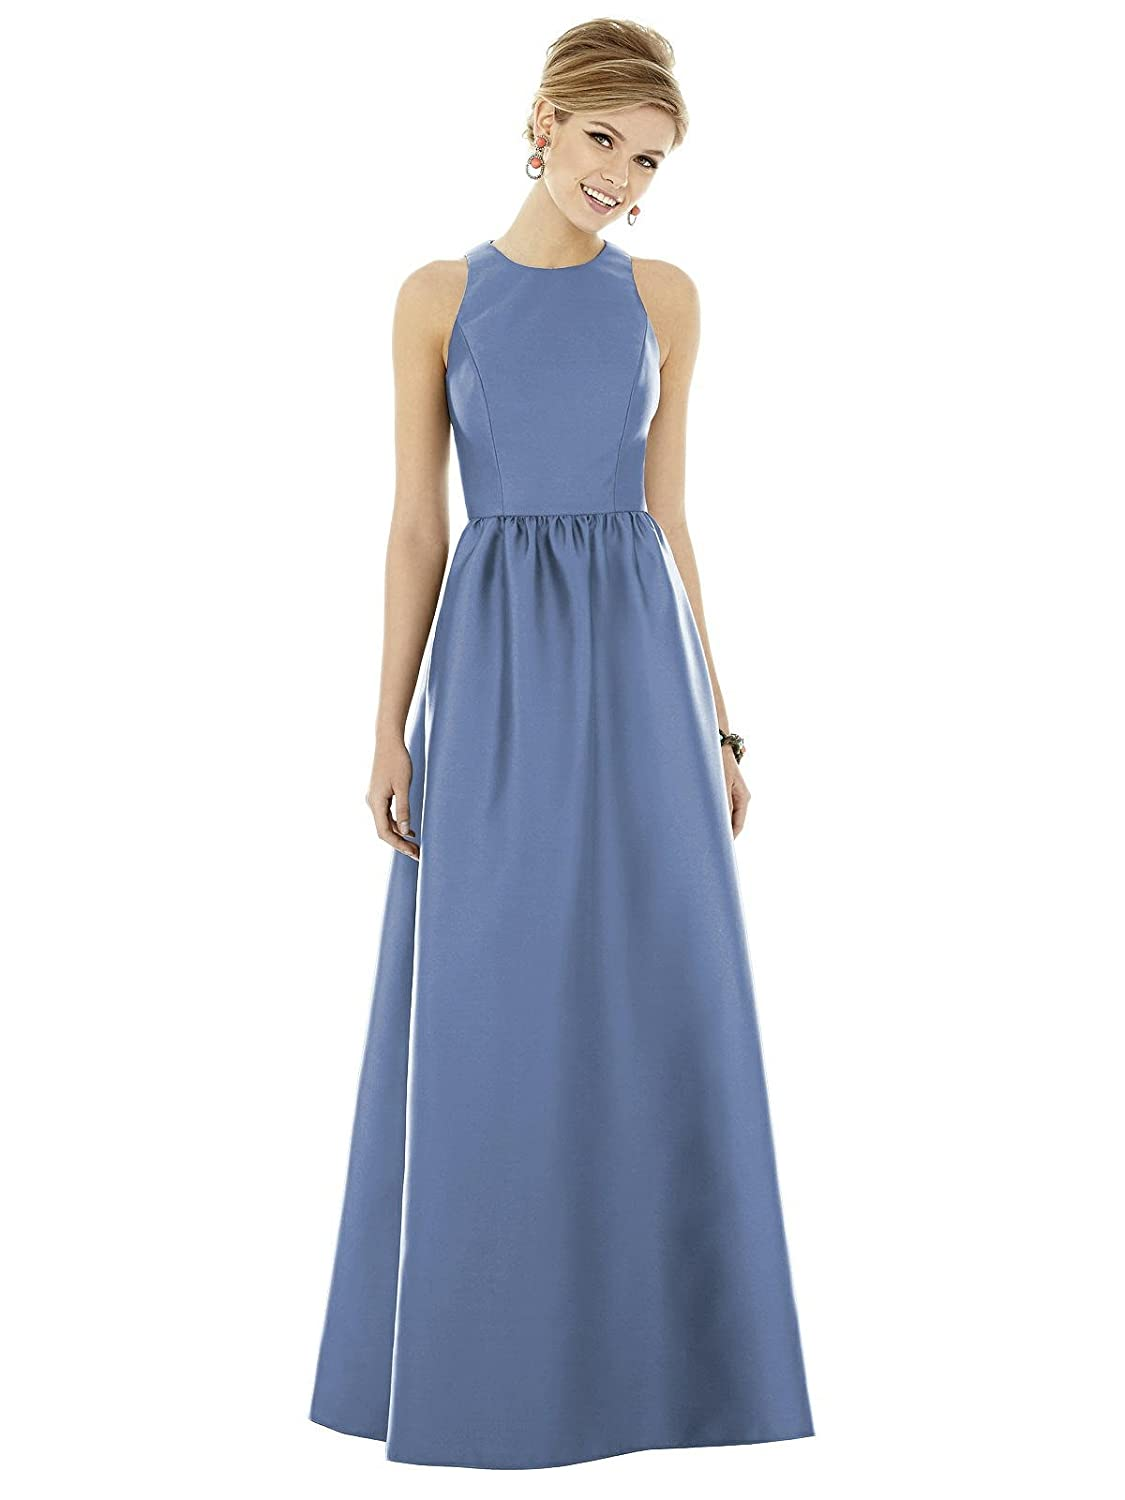 d710801805 CLASSIC SATEEN BRIDESMAID DRESS - Incredibly soft and very smooth, the  elegant satin- like finish has a luxuriously glossy sheen and a moves  easily with the ...